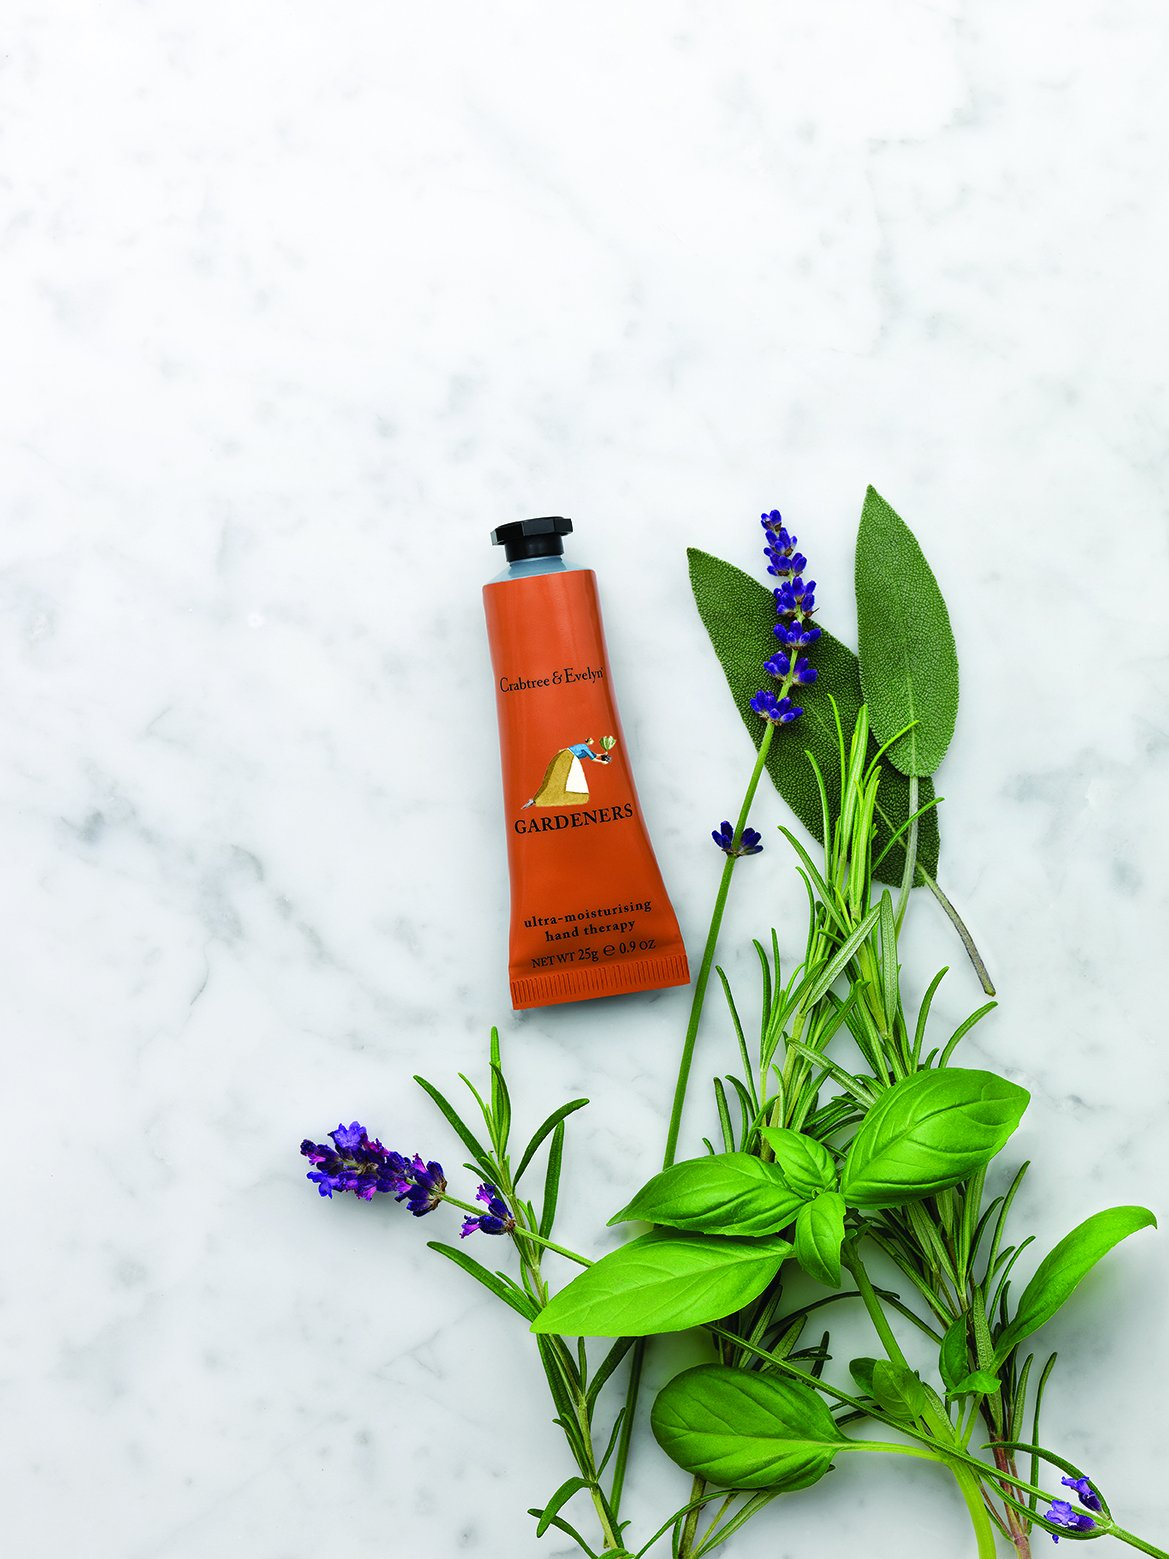 Crabtree & Evelyn Gardeners Ultra-Moisturising Hand Therapy - 100g by Crabtree & Evelyn (Image #3)